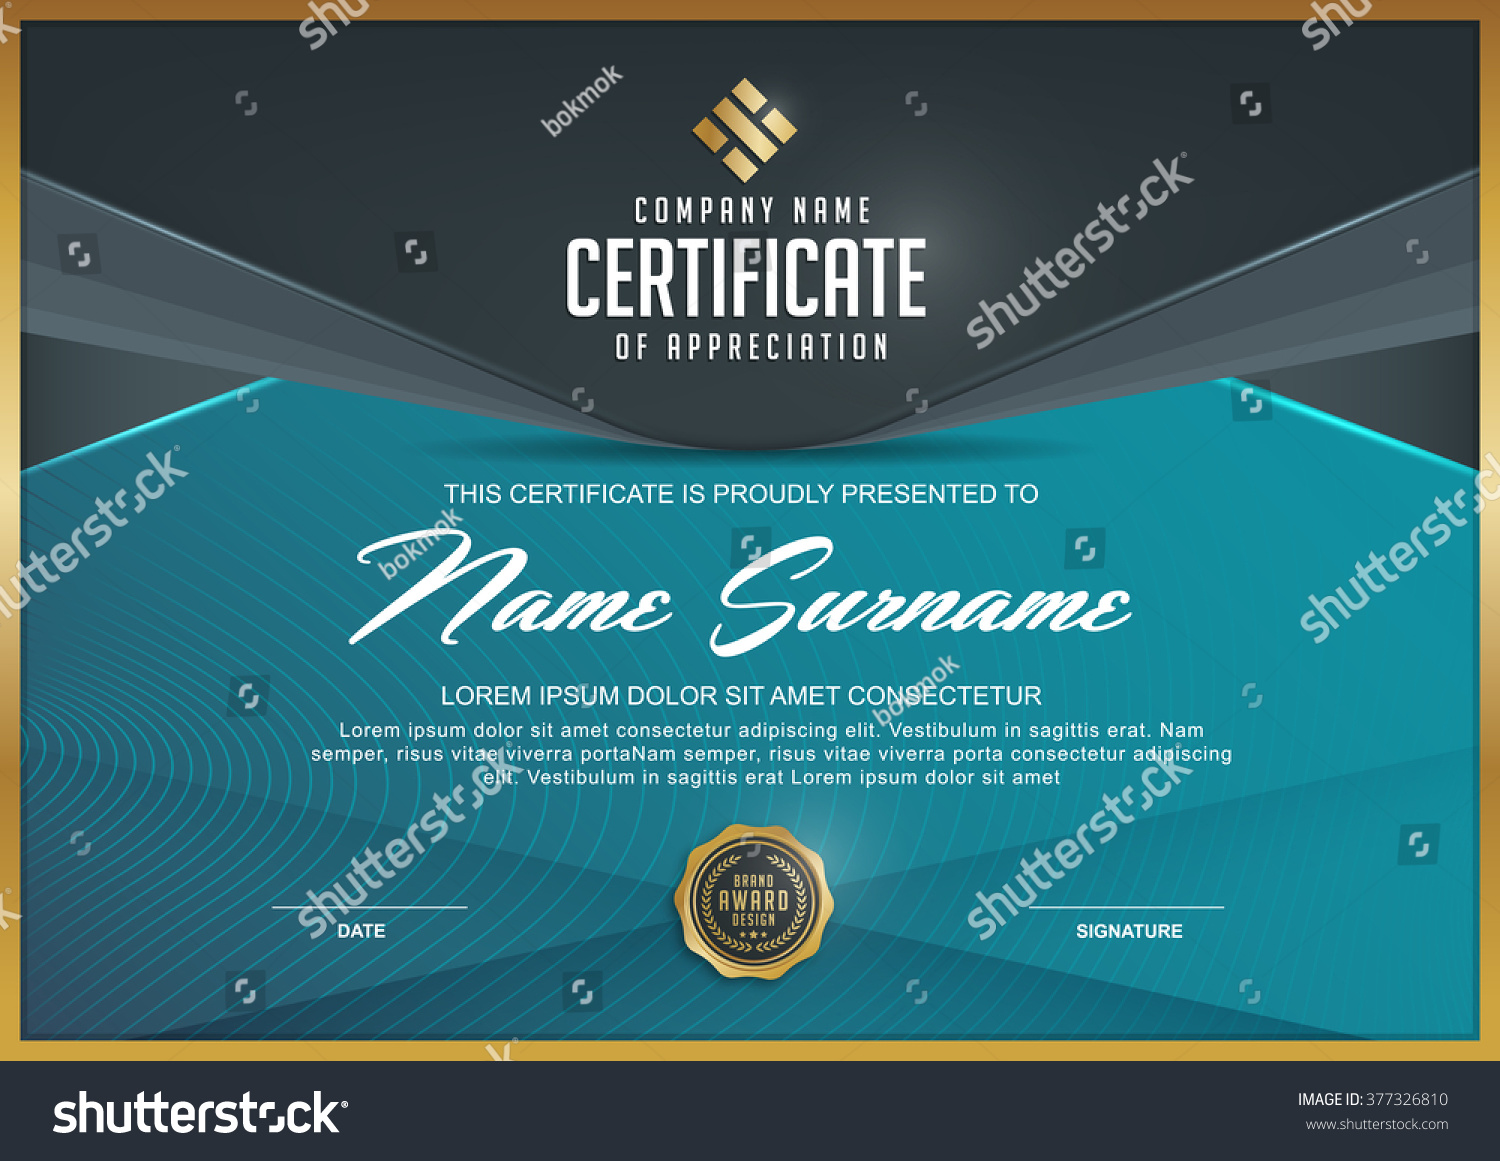 certificate template with Luxury and modern patternQualification certificate blank template with elegant Vector illustration